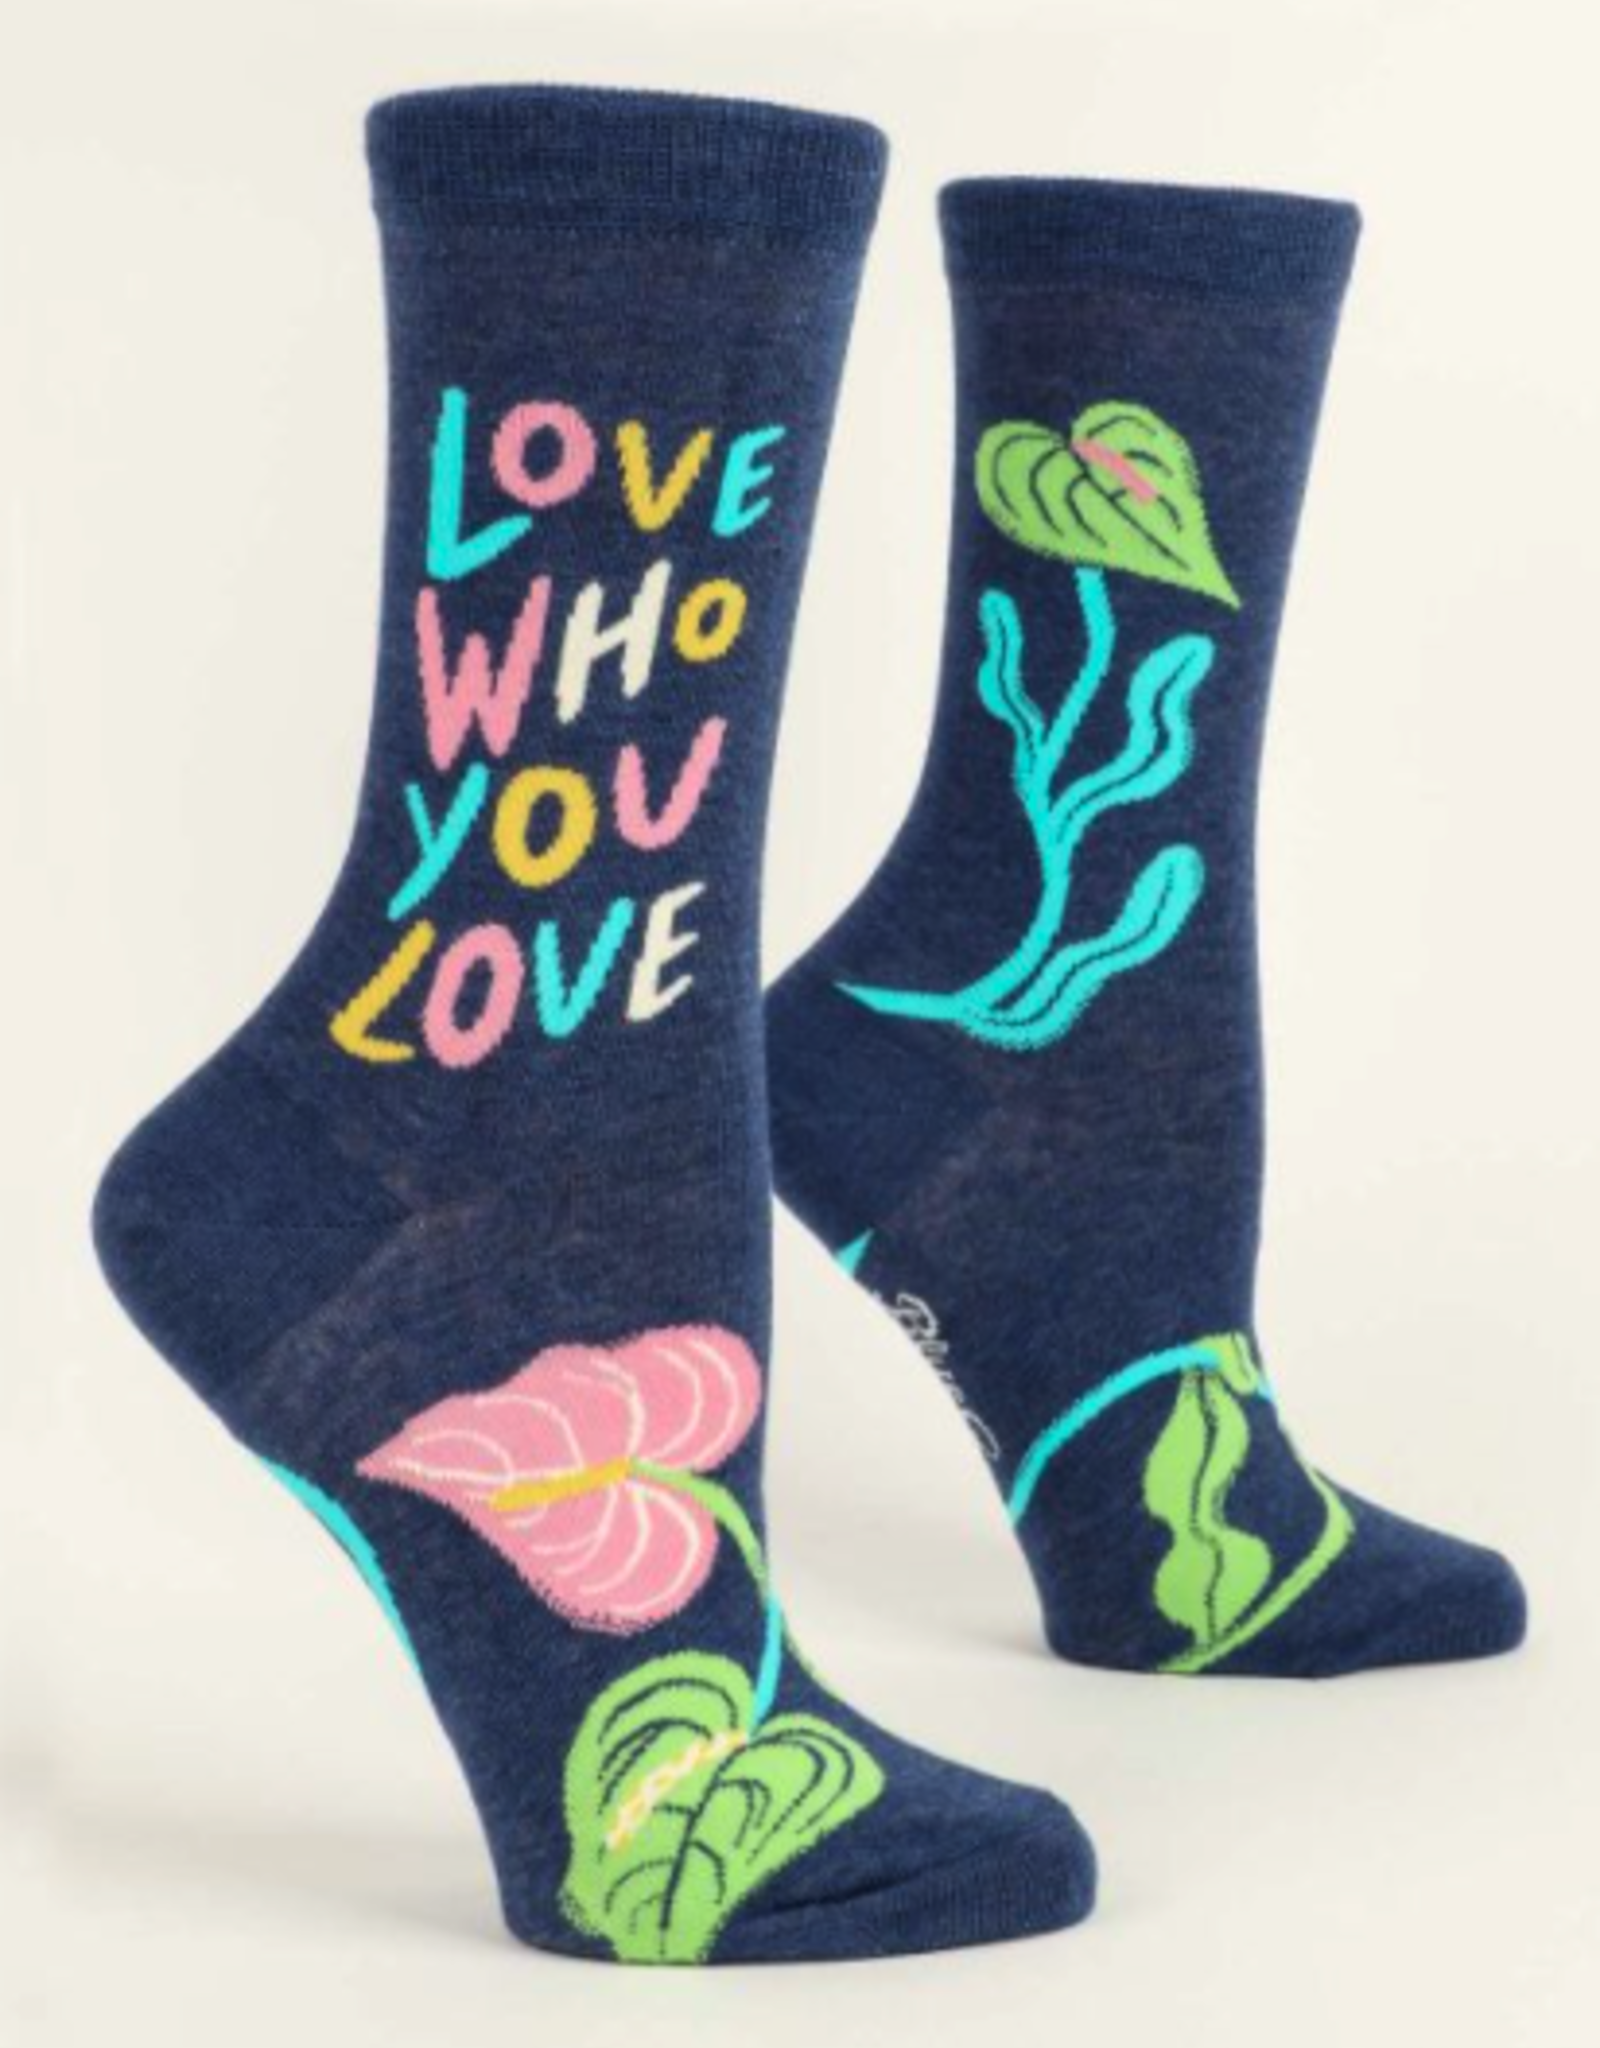 Blue Q Blue Q - Crew Socks Love Who You Love